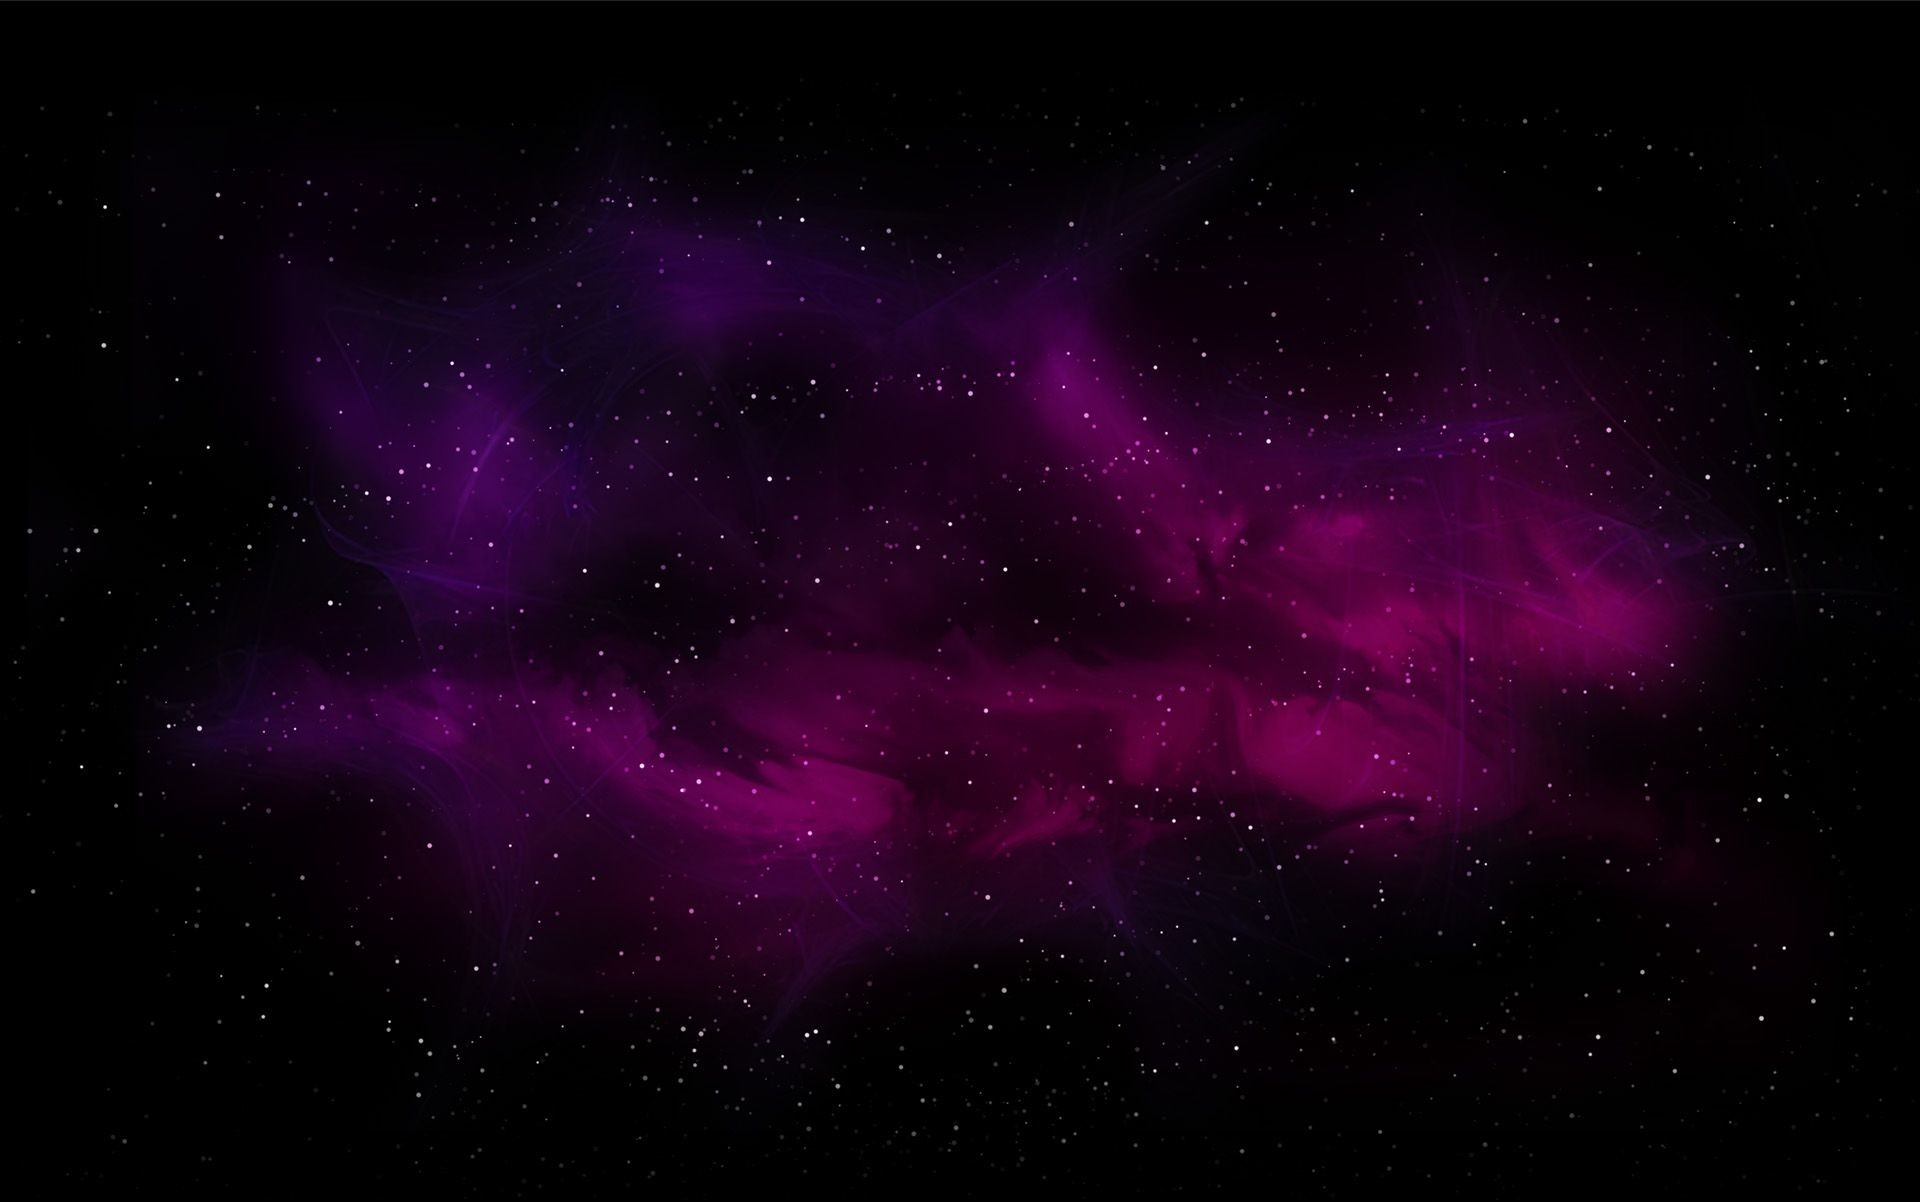 Space galaxy wallpapers for iPhone and